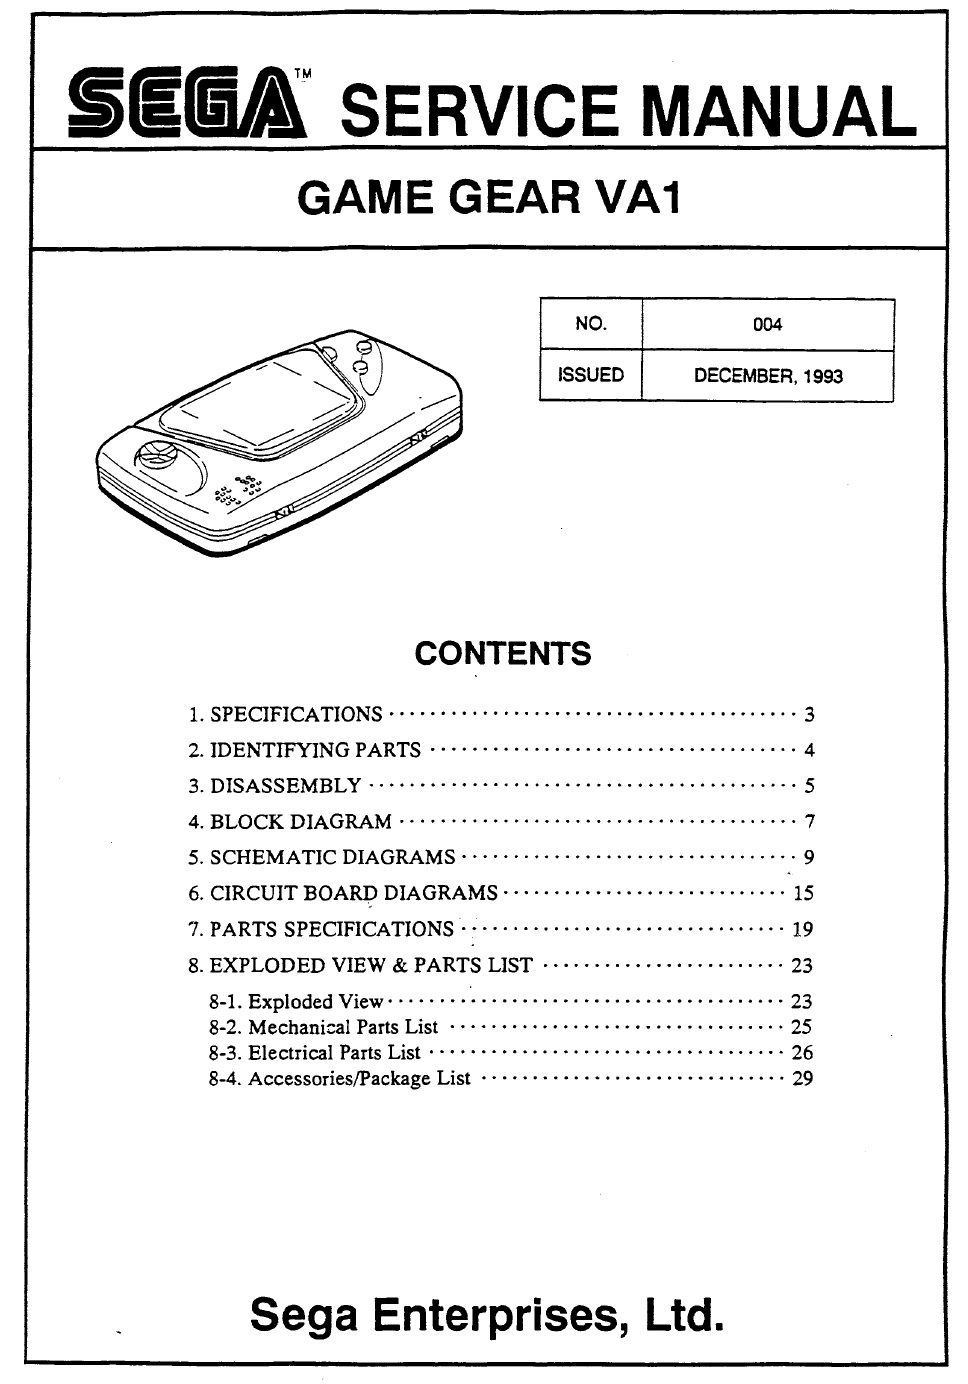 Sega Game Gear Va1 Service Manual Free Pdf Download 24 Pages Playstation 4 Block Diagram Background Image